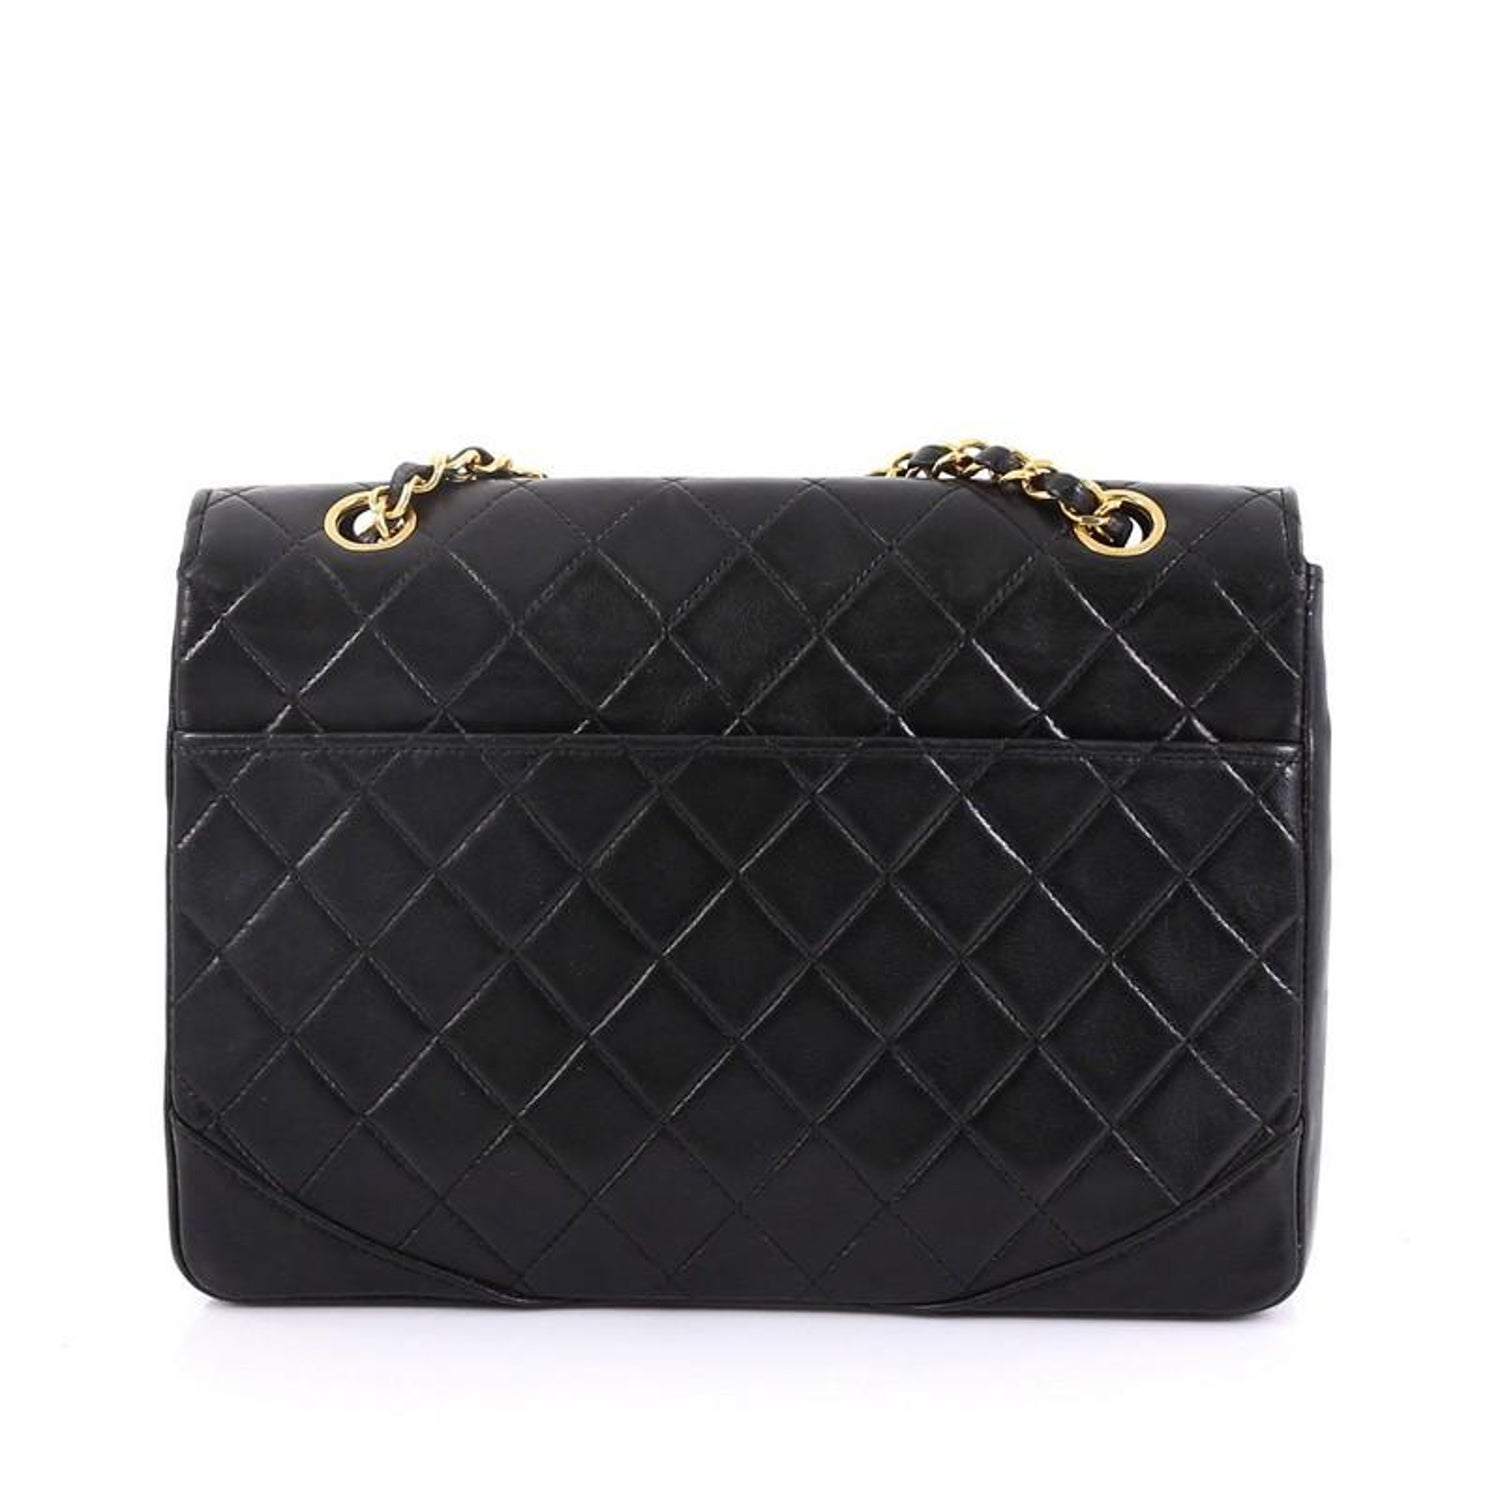 c4b59ee4c730 Chanel Vintage Round Flap Bag Quilted Lambskin Medium at 1stdibs